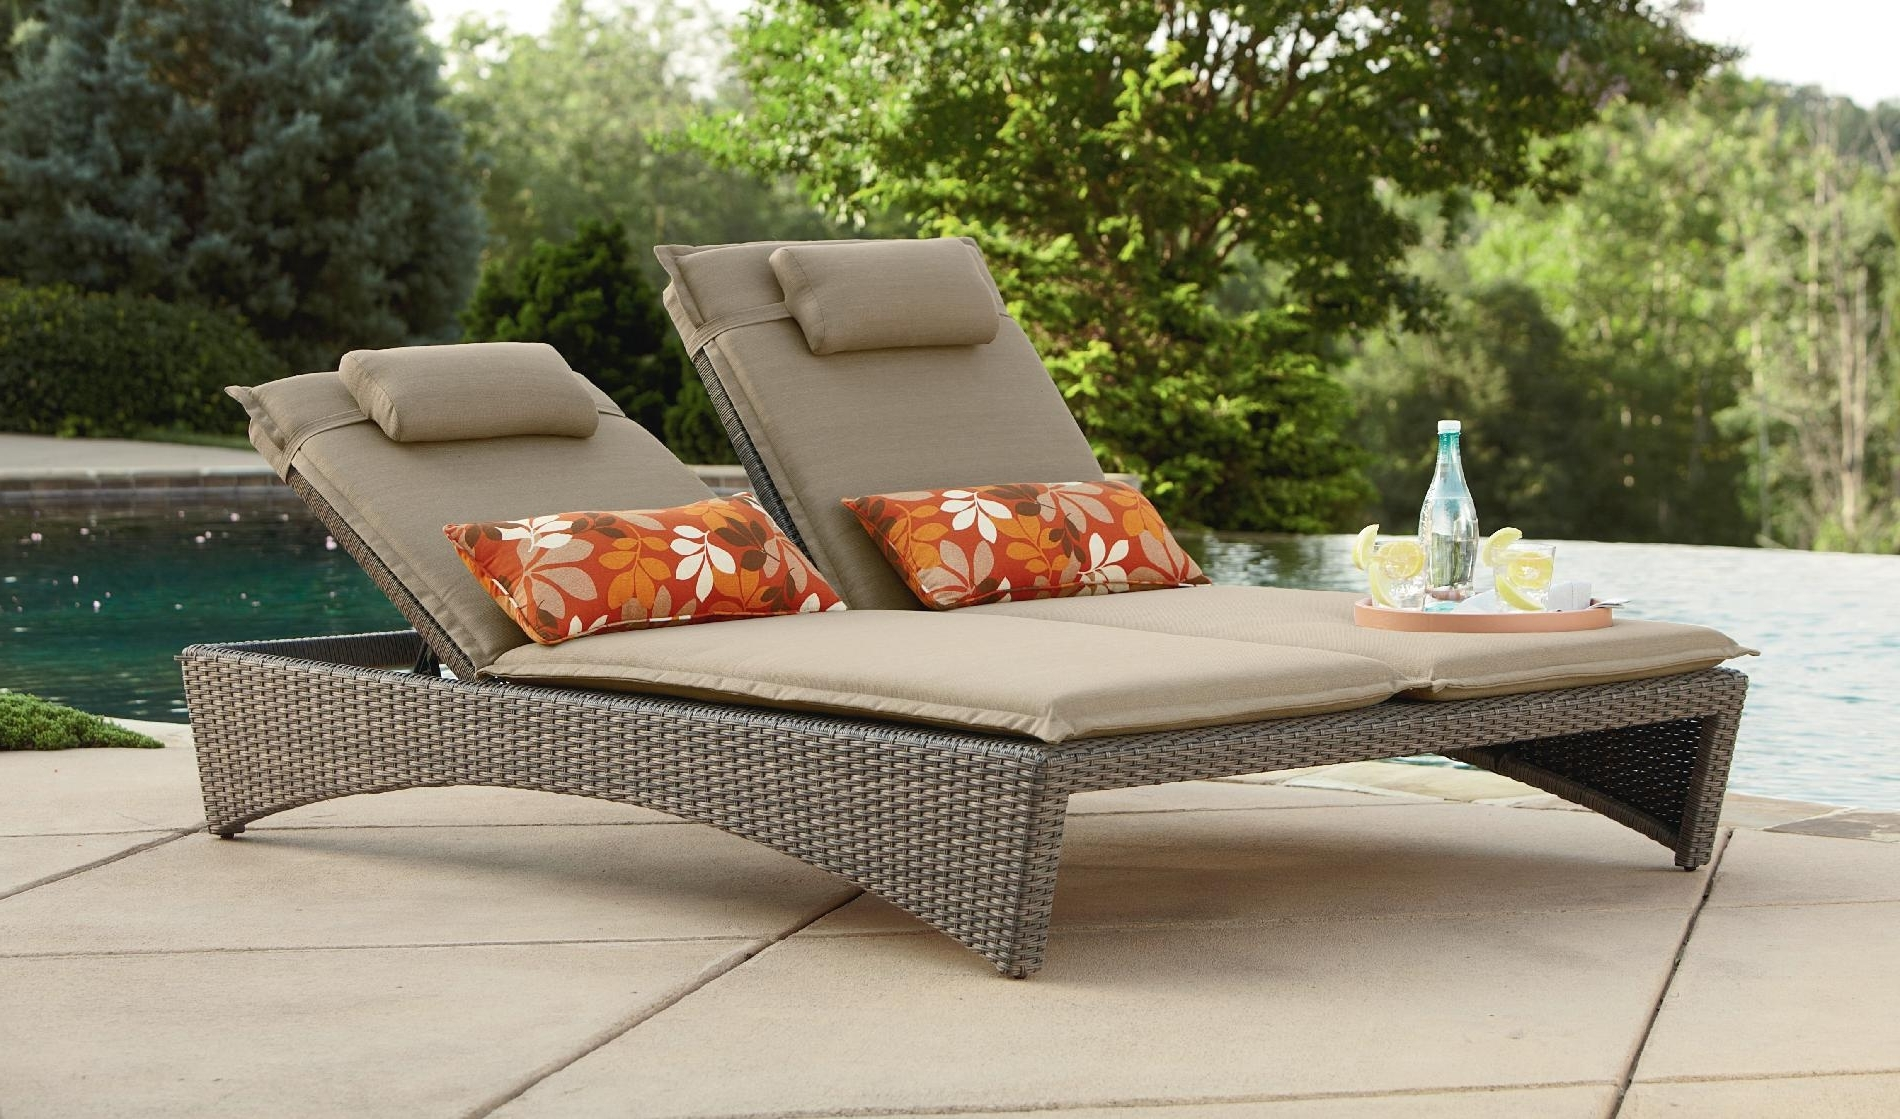 Best Pool Chaise Lounge Chairs — Bed And Shower : Decorating Pool Intended For Well Known Folding Chaise Lounge Chairs For Outdoor (View 11 of 15)